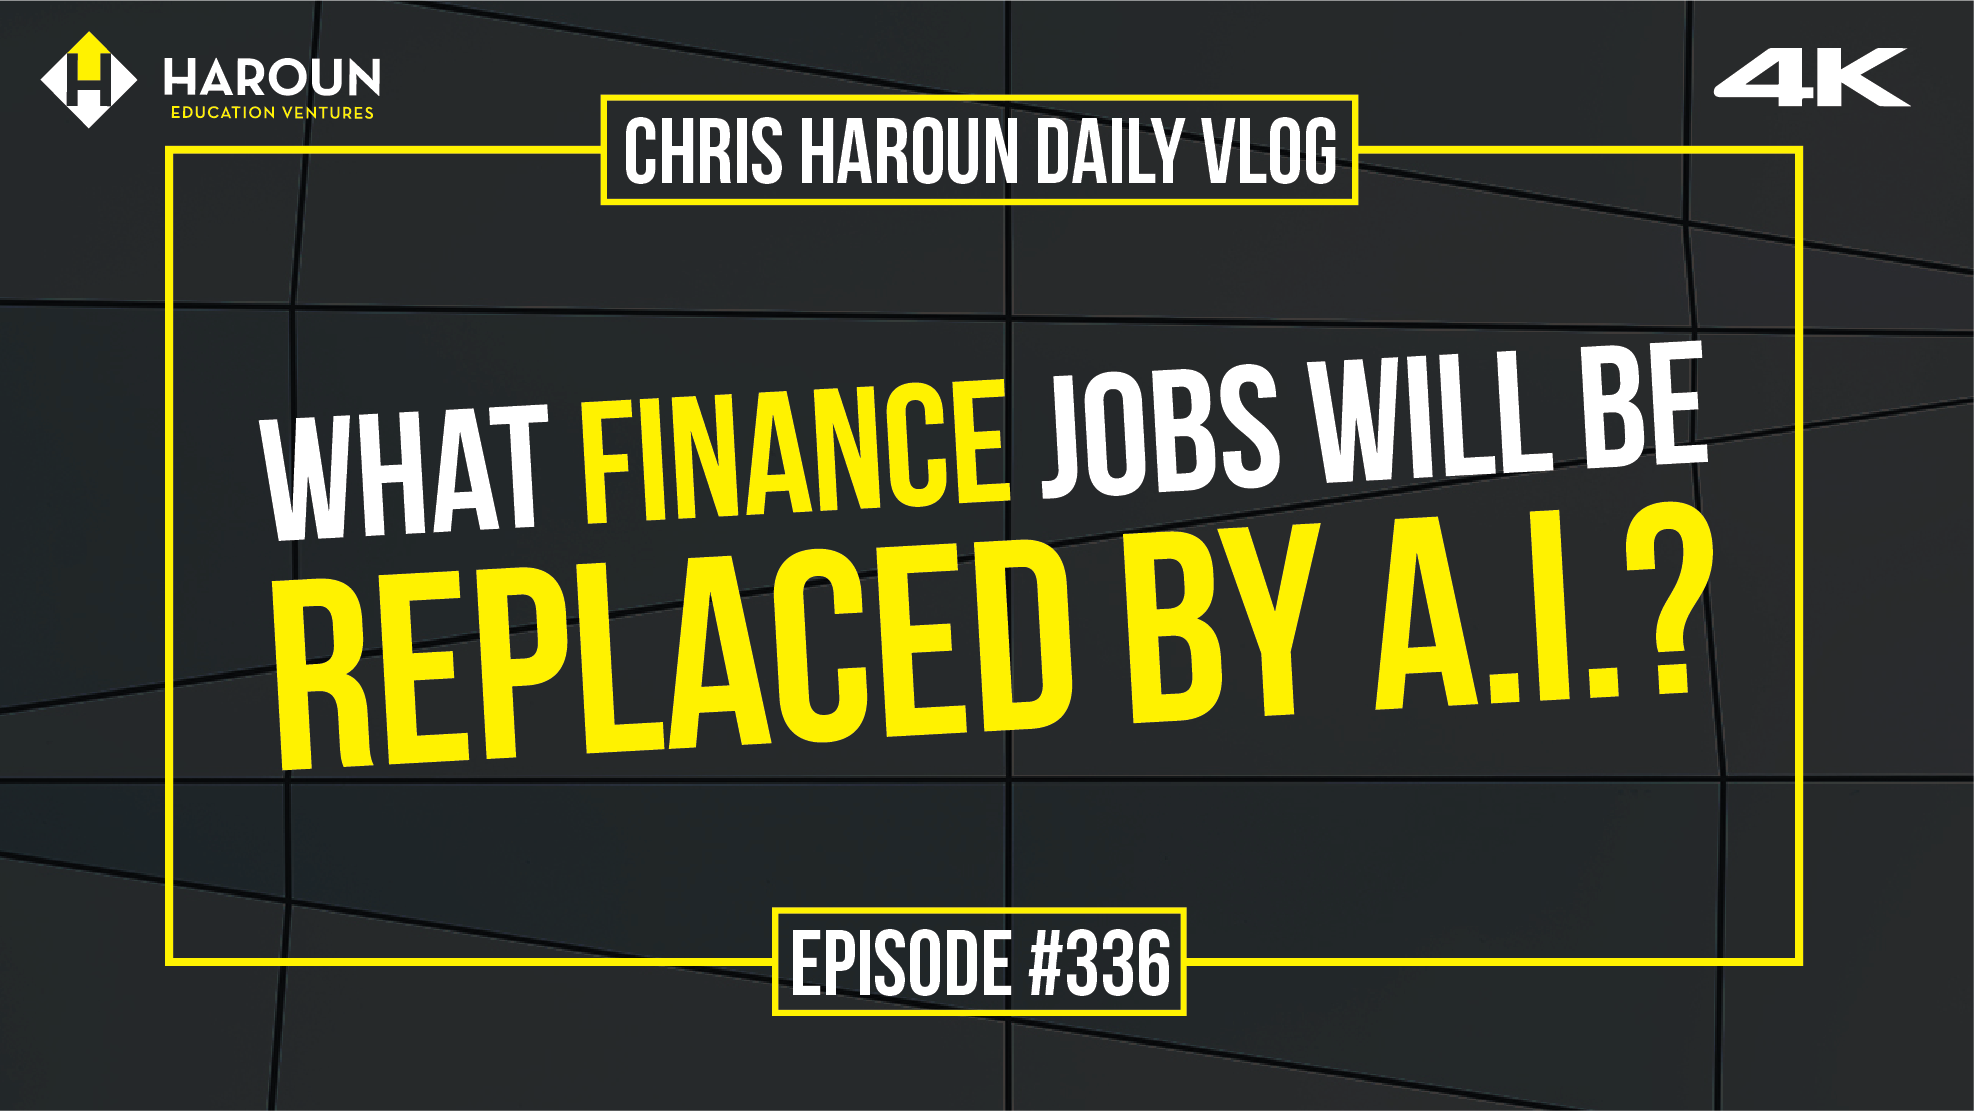 VLOG_336_7_2_2019_What Finance Jobs Will Be Replaced by A.I.?.png